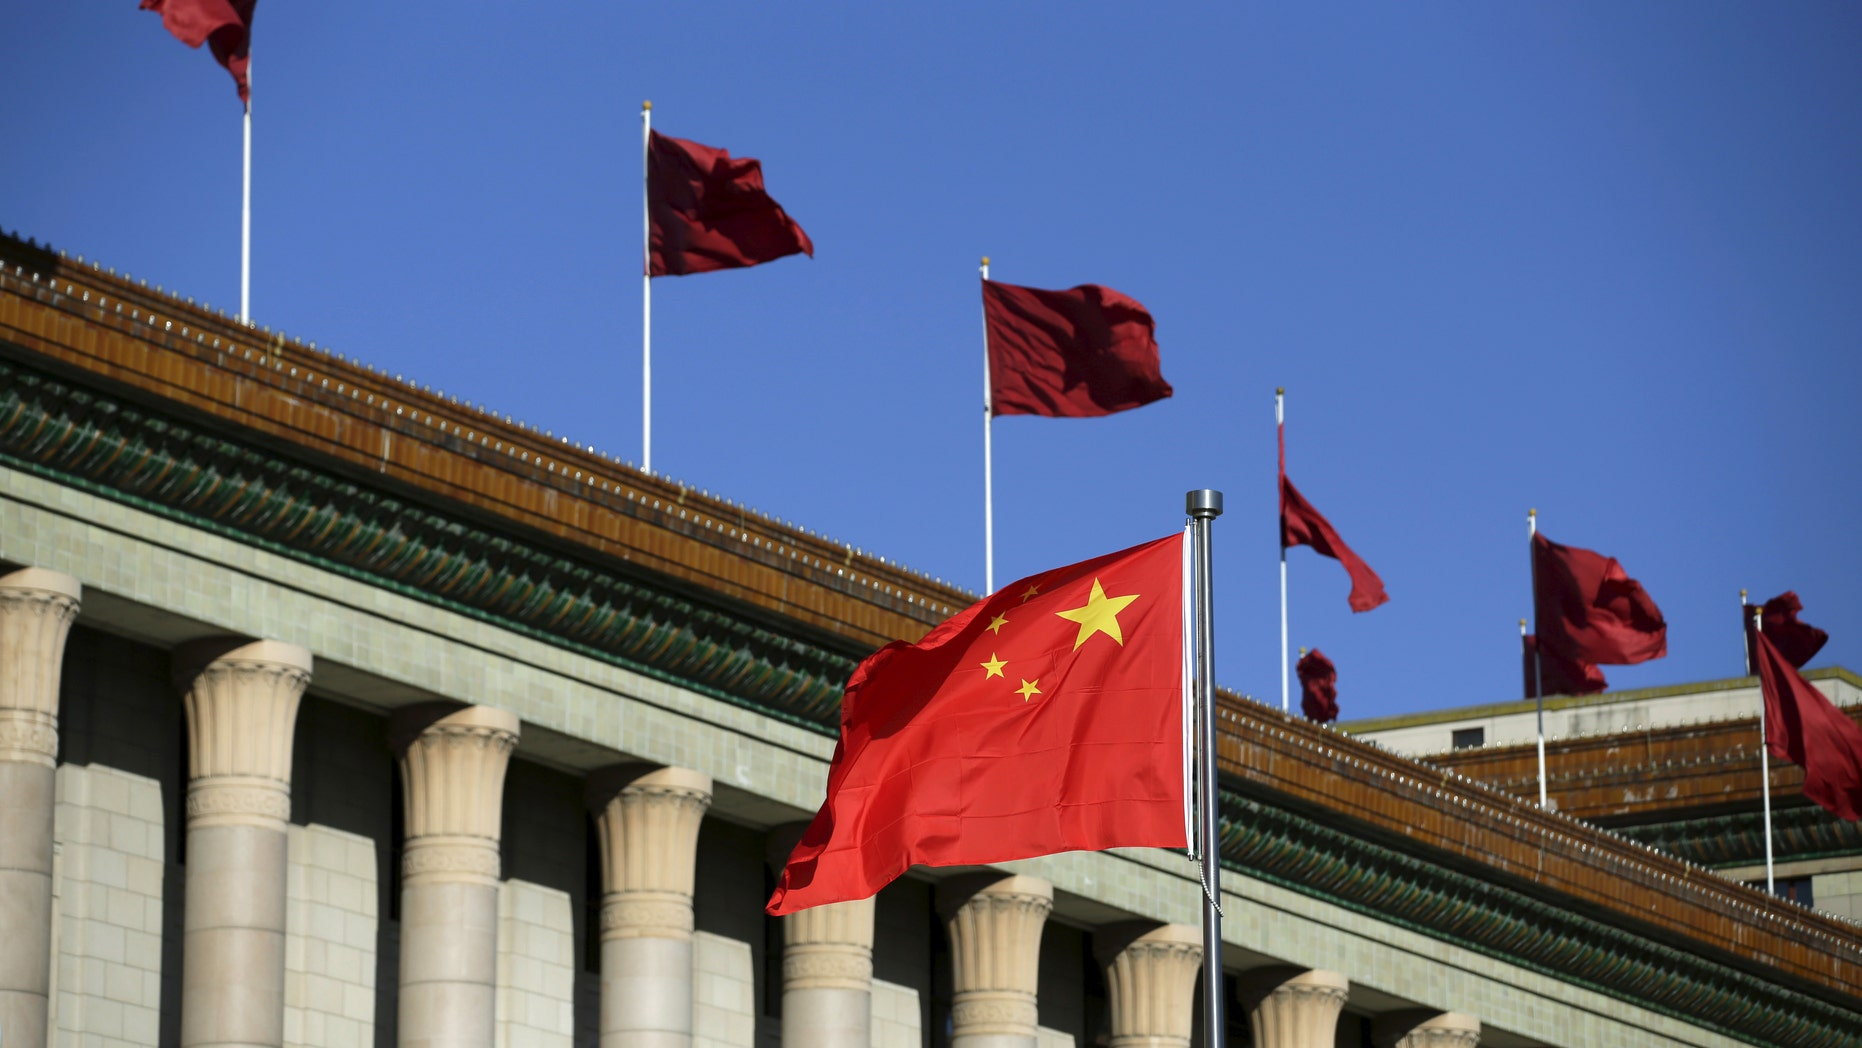 File photo - Chinese flag waves in front of the Great Hall of the People in Beijing, China, Oct. 29, 2015. (REUTERS/Jason Lee)